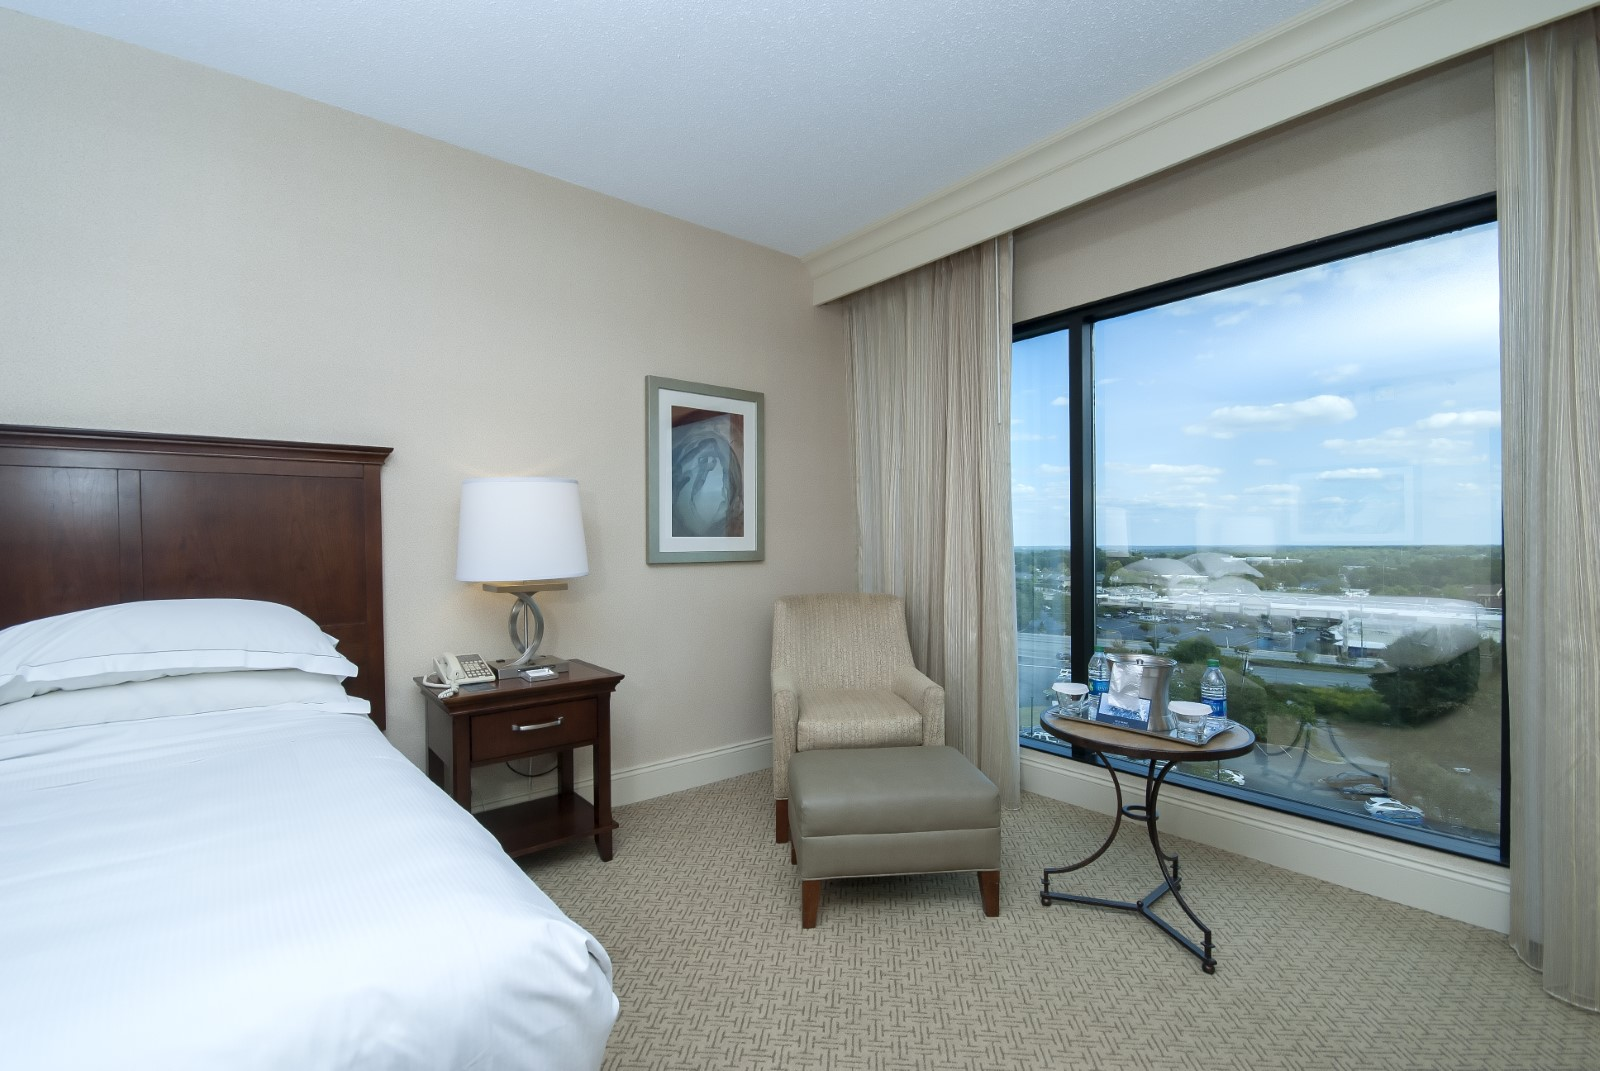 Greenville Hilton Guest Room